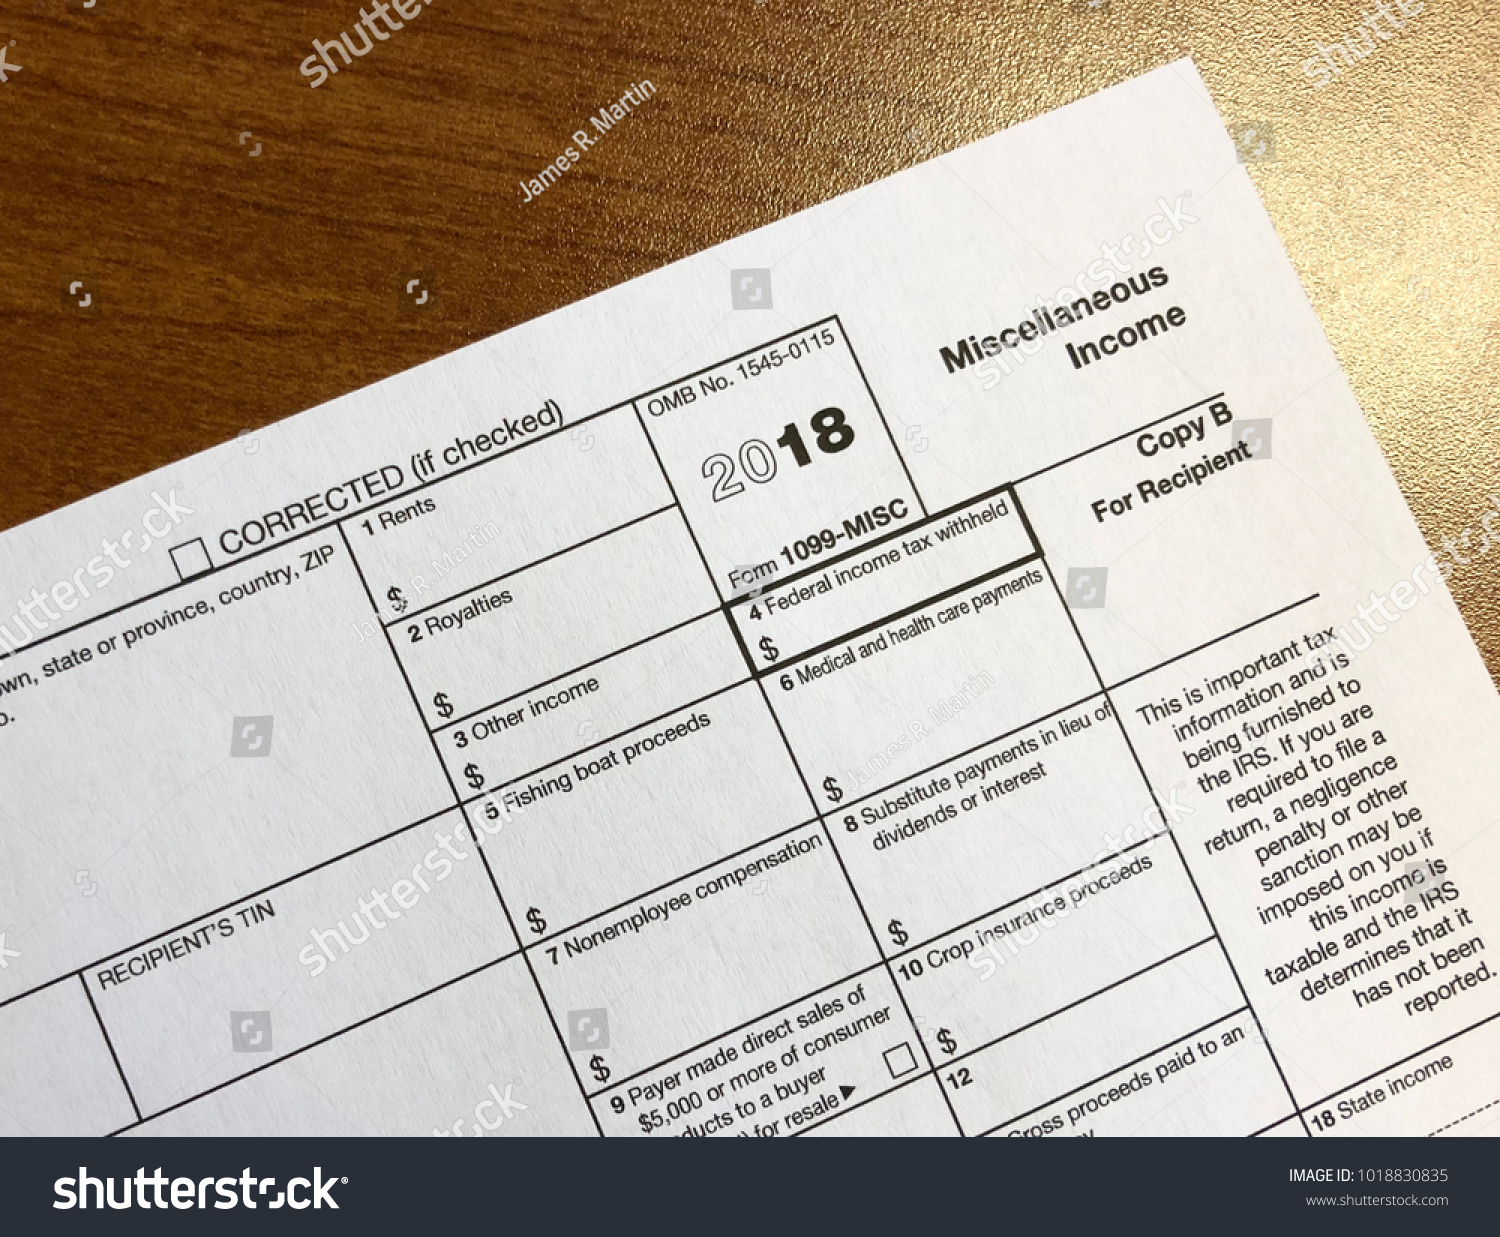 Irs Form 1099 Miscellaneous